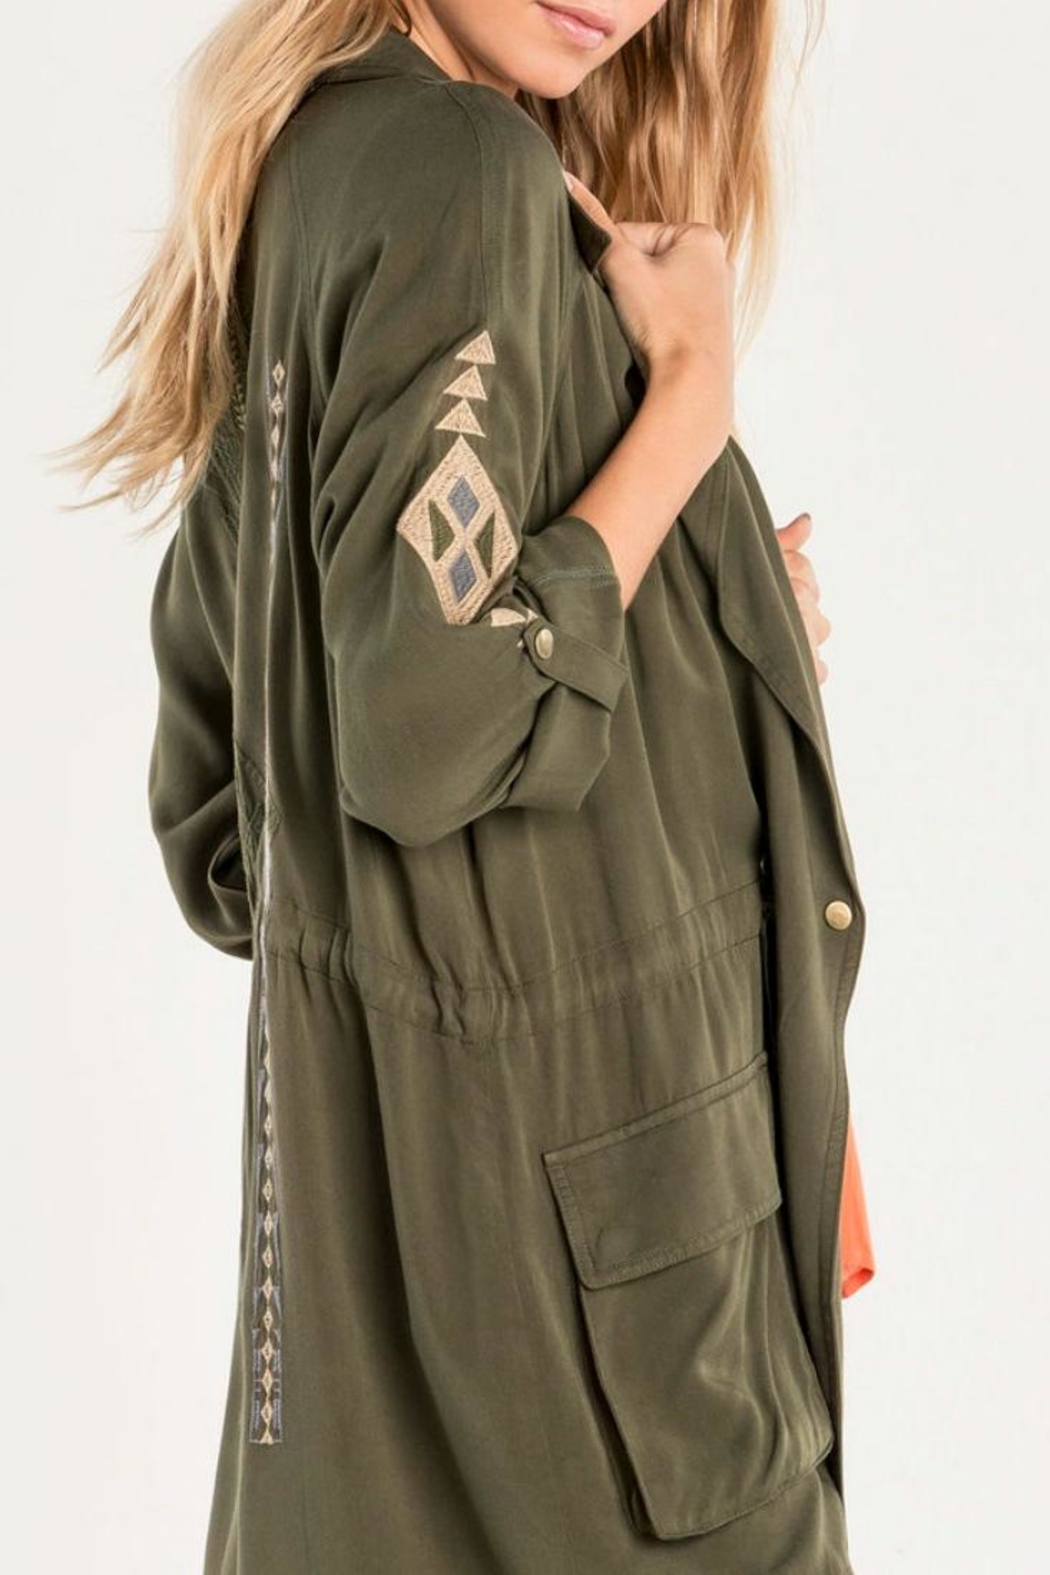 Miss Me Olive Embroidered Utility Jacket - Back Cropped Image